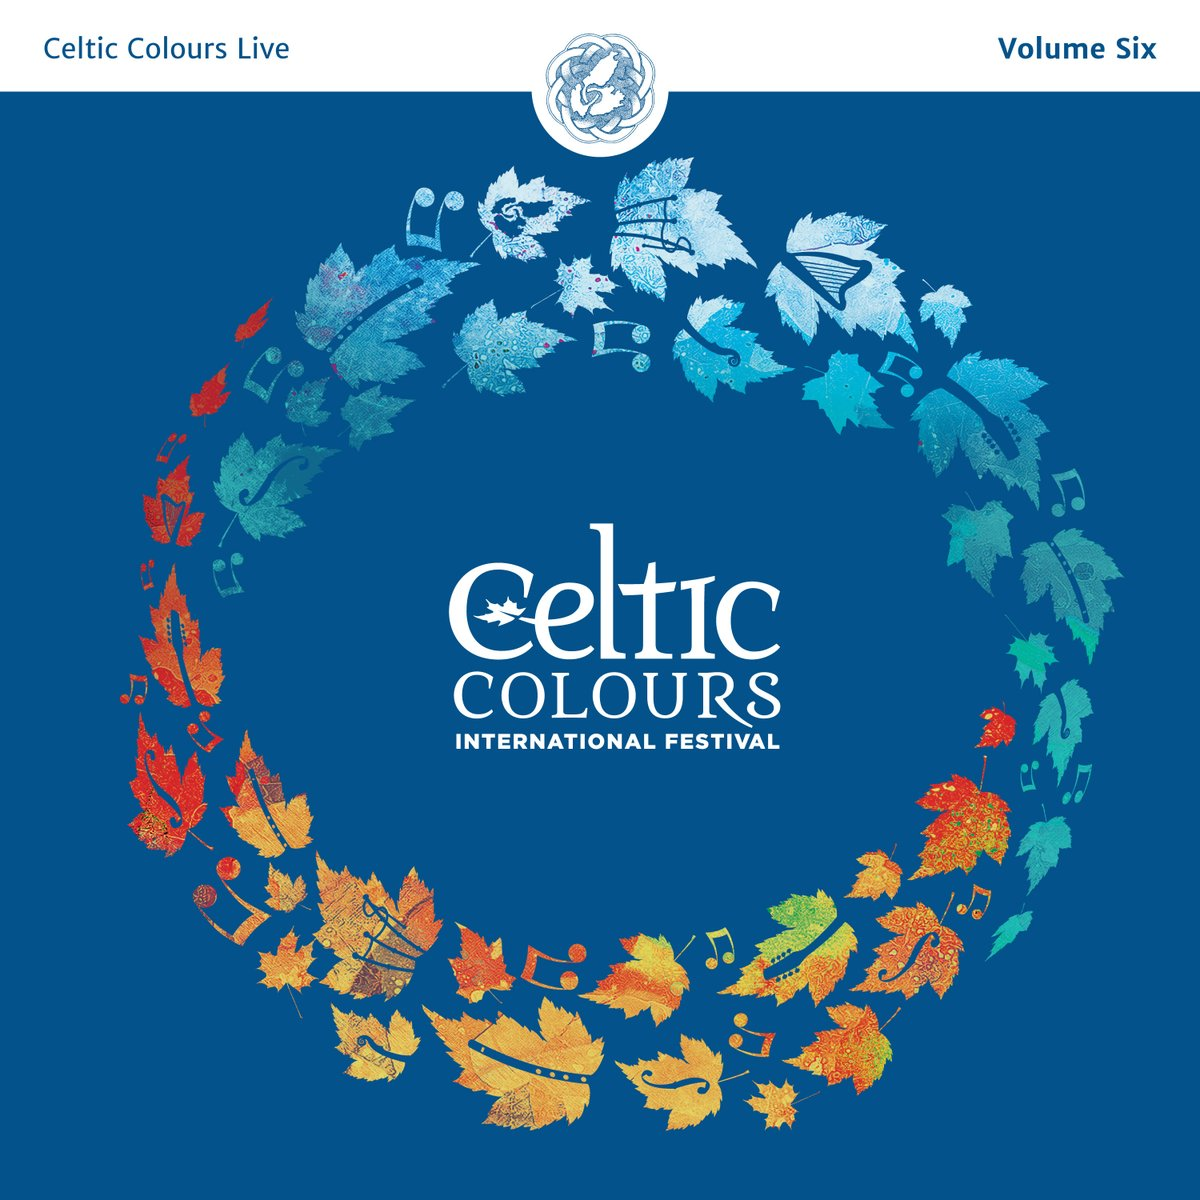 Artist:  Kate Rusby (Various Artists)  Title:  Celtic Colours Volume 6  Credit:  Mixing (live mix, 1 track)  Year:  2018